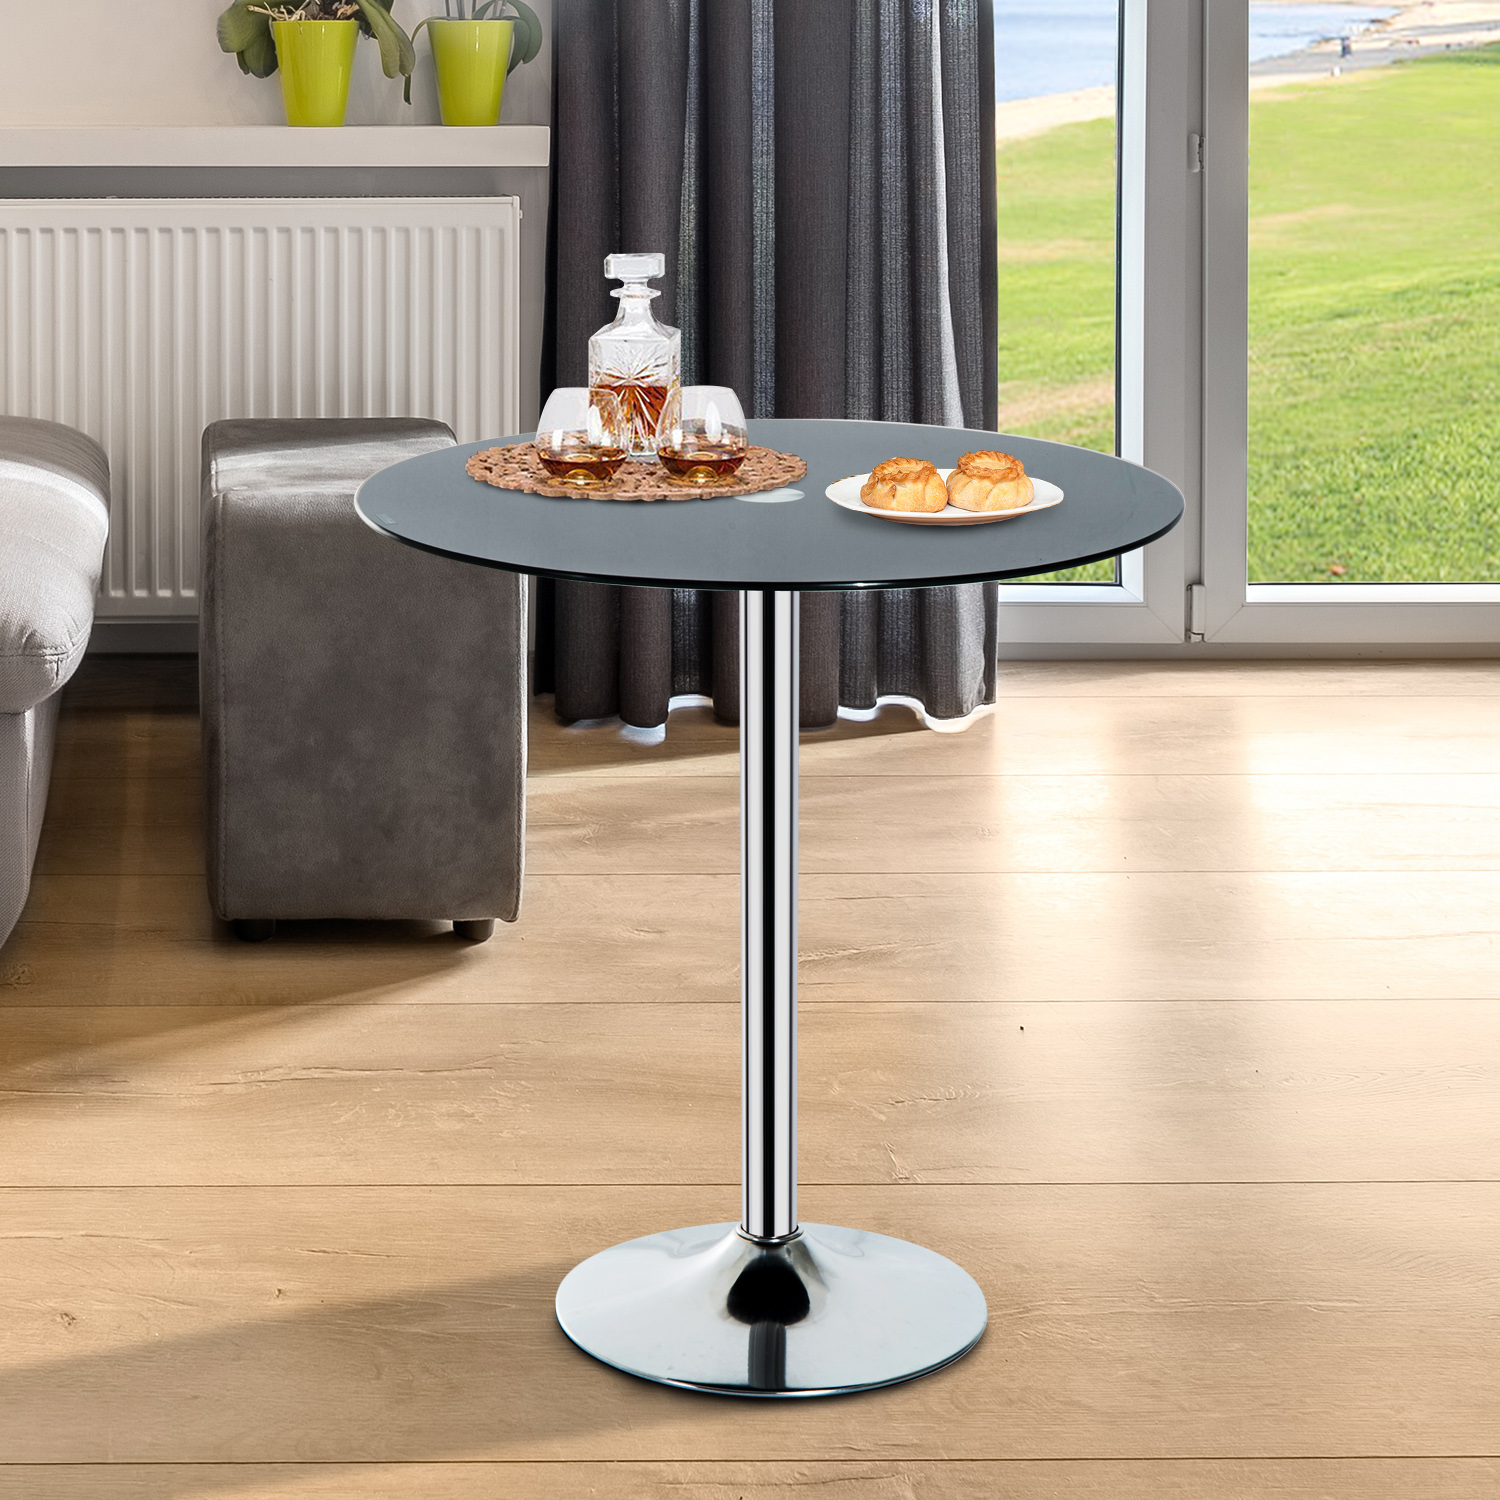 Details about round bar table pub glass top modern home dining kitchen furniture cafe chrome